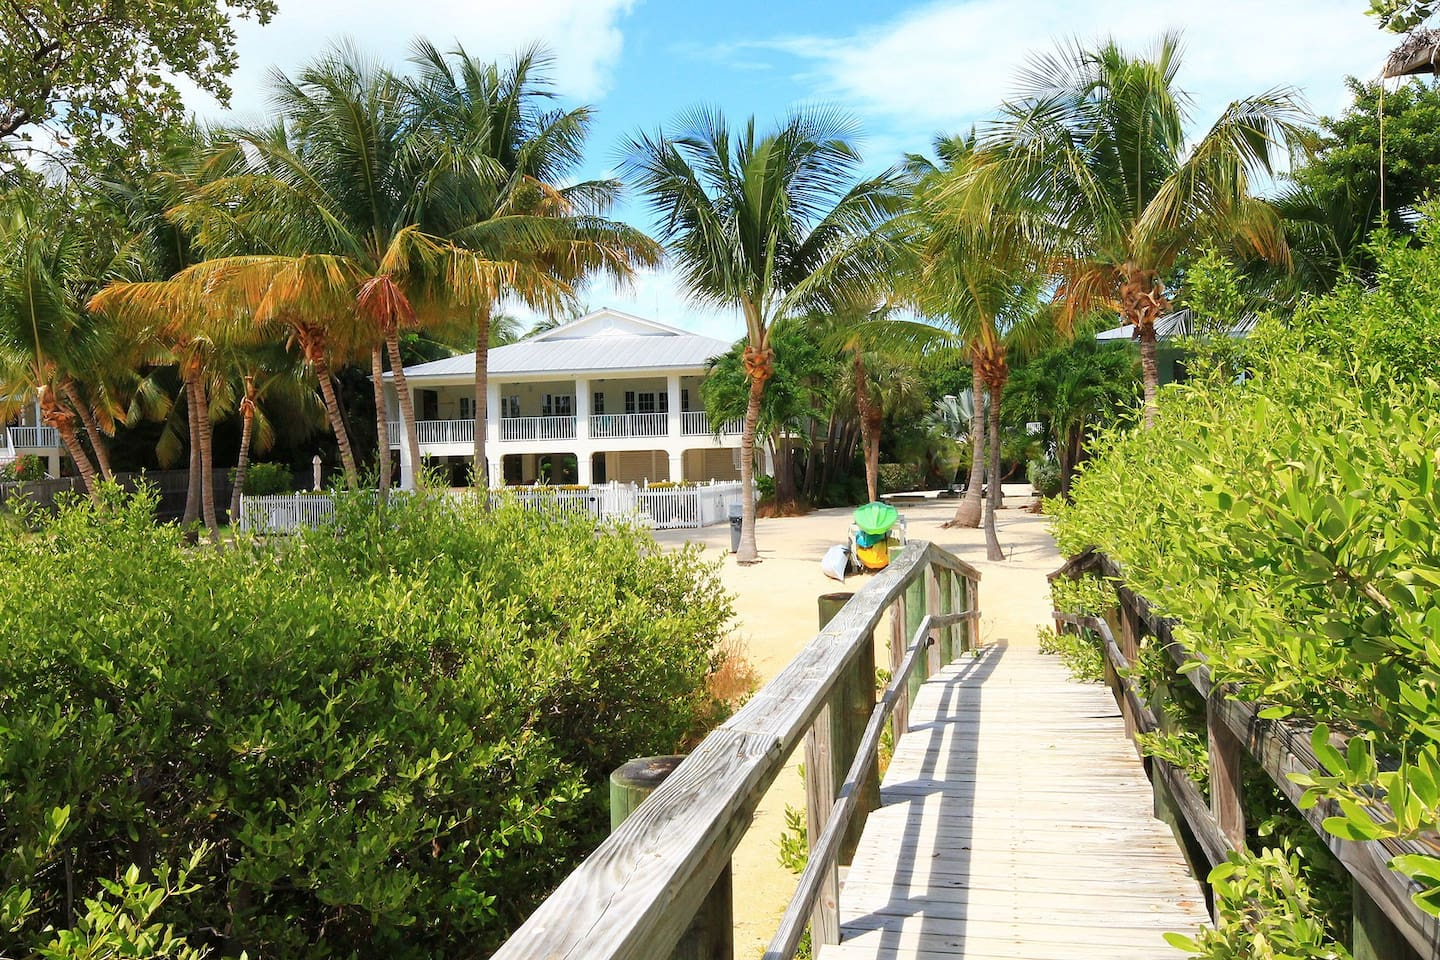 conch house at alligator reef compound houses for rent in